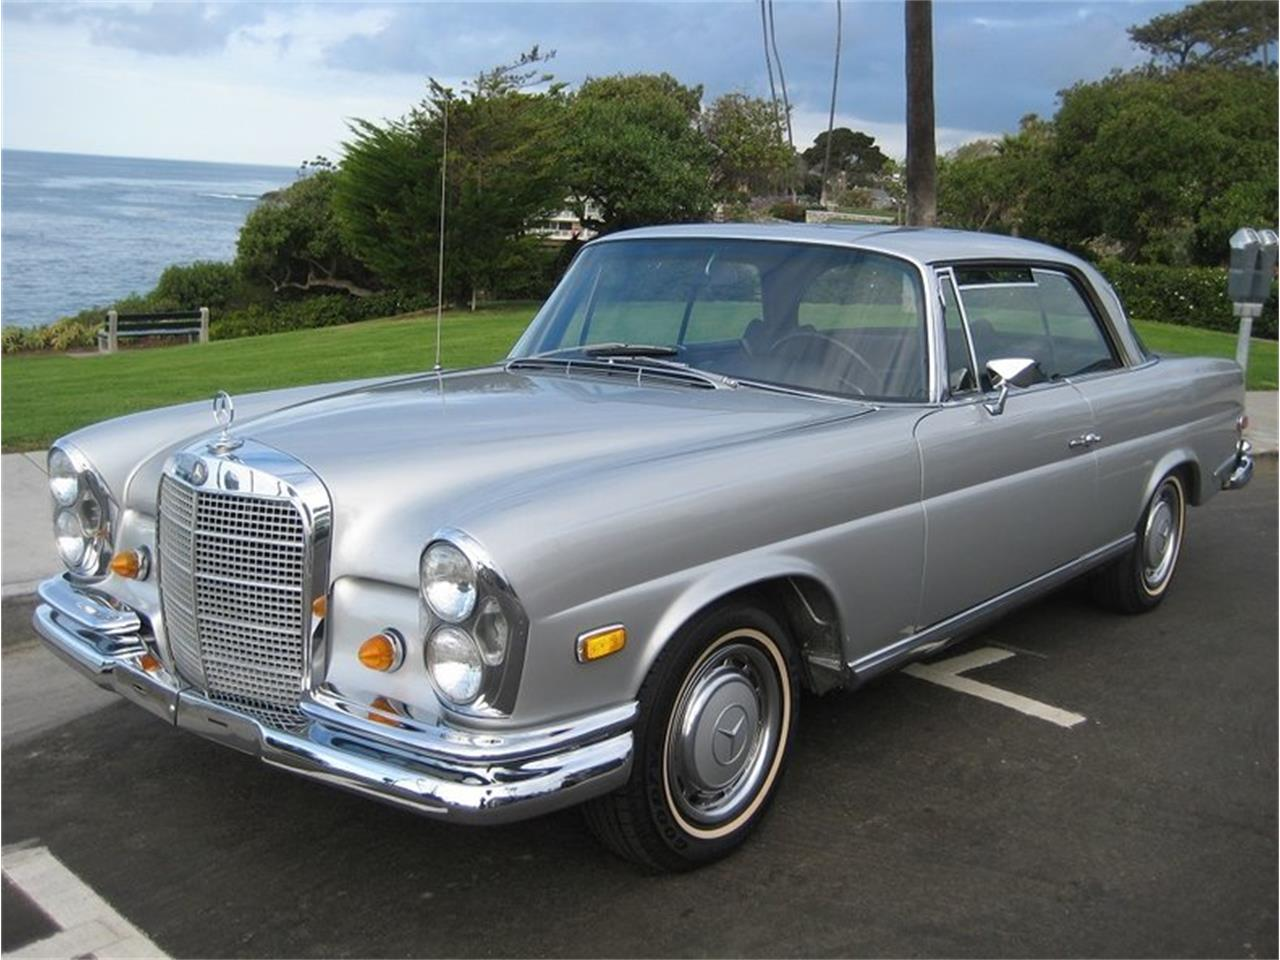 Large Picture of Classic 1969 Mercedes-Benz 280SE located in Laguna Beach California - $109,000.00 Offered by Laguna Classic Cars - MGKL